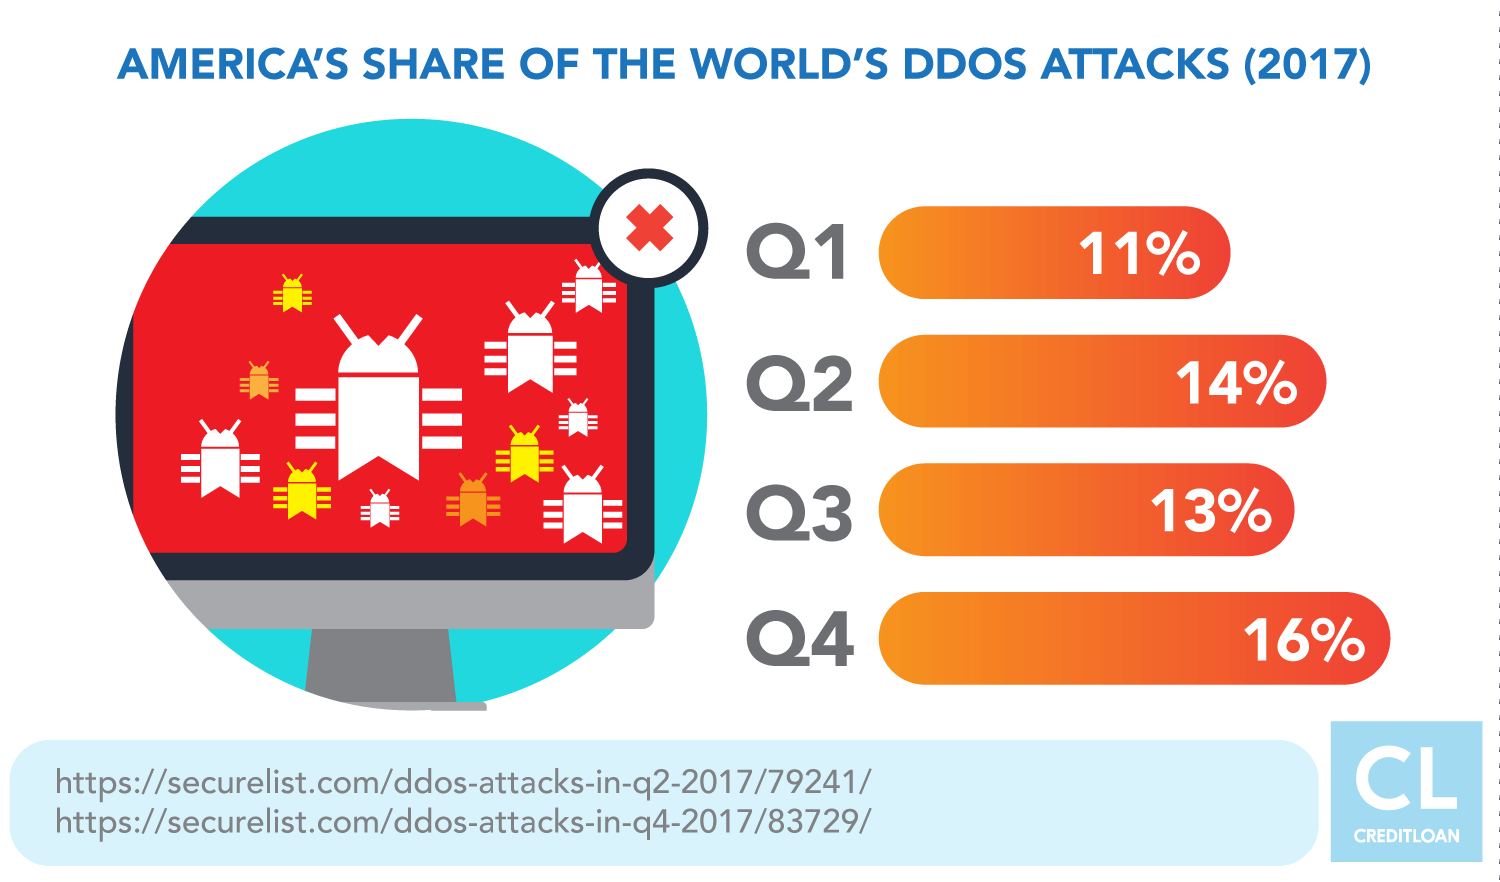 America's share of the world's DDOS attacks in 2017